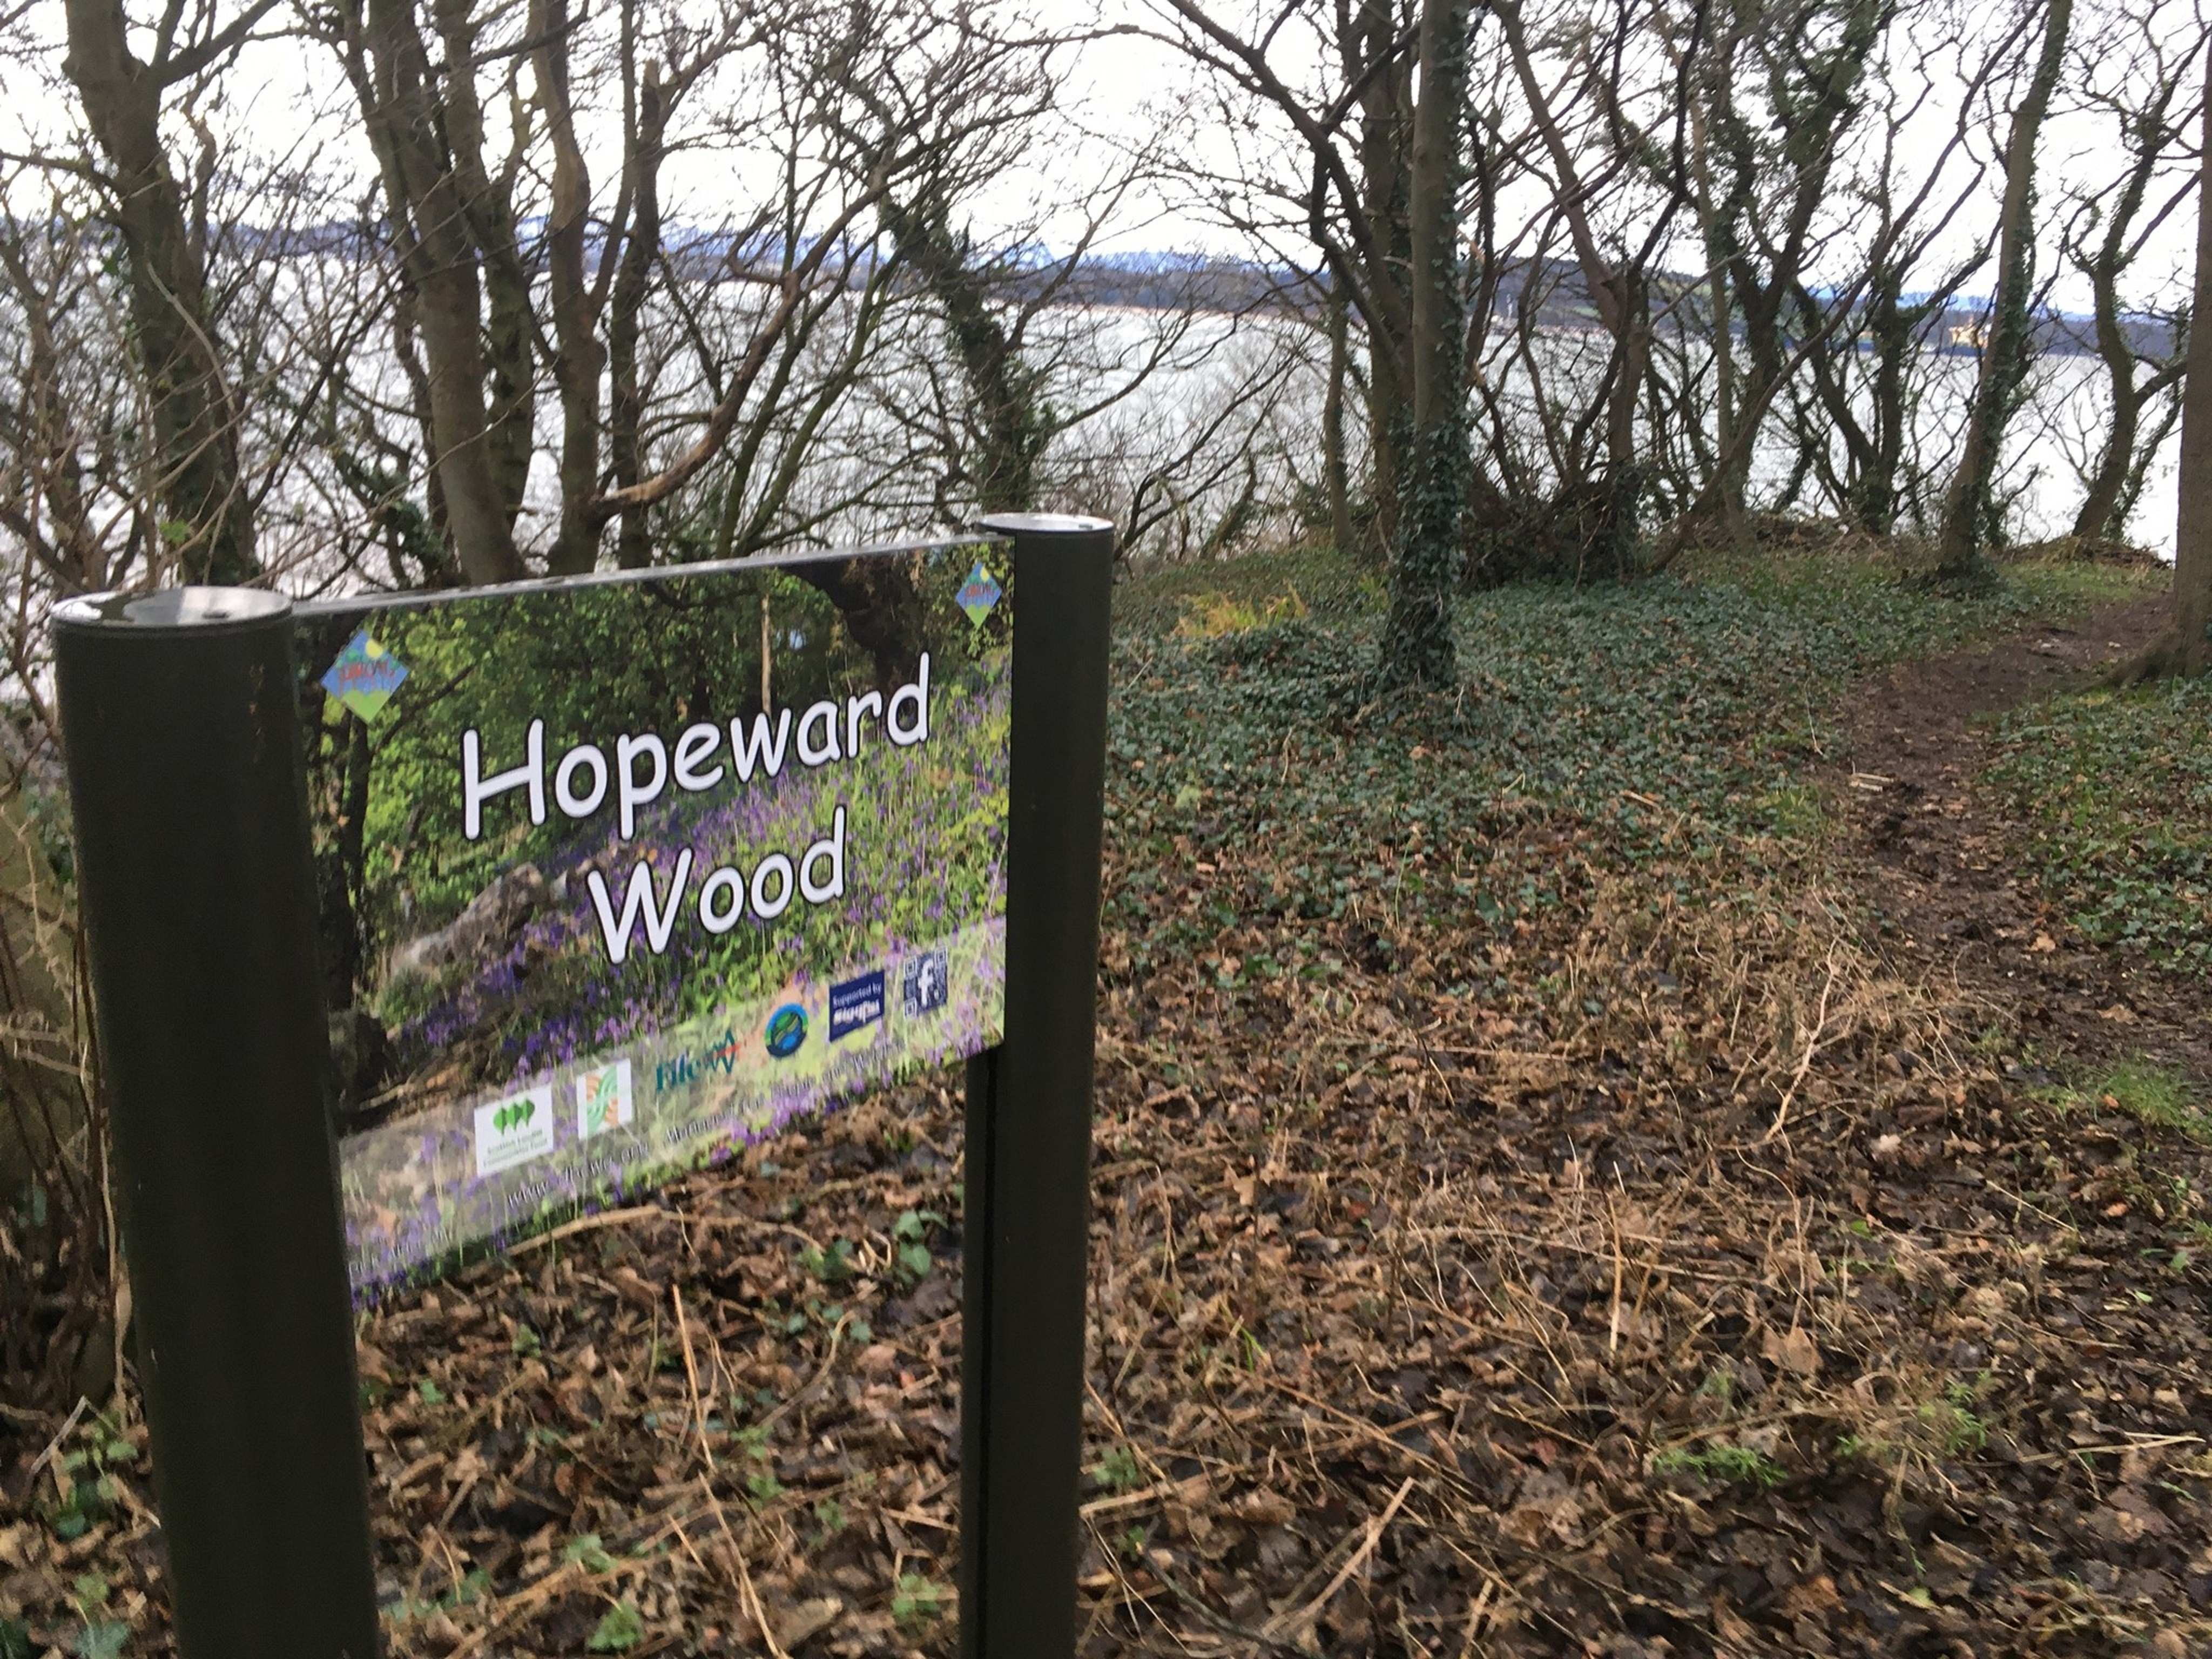 The ancient woodland areas are protected and date back to the 1780s.